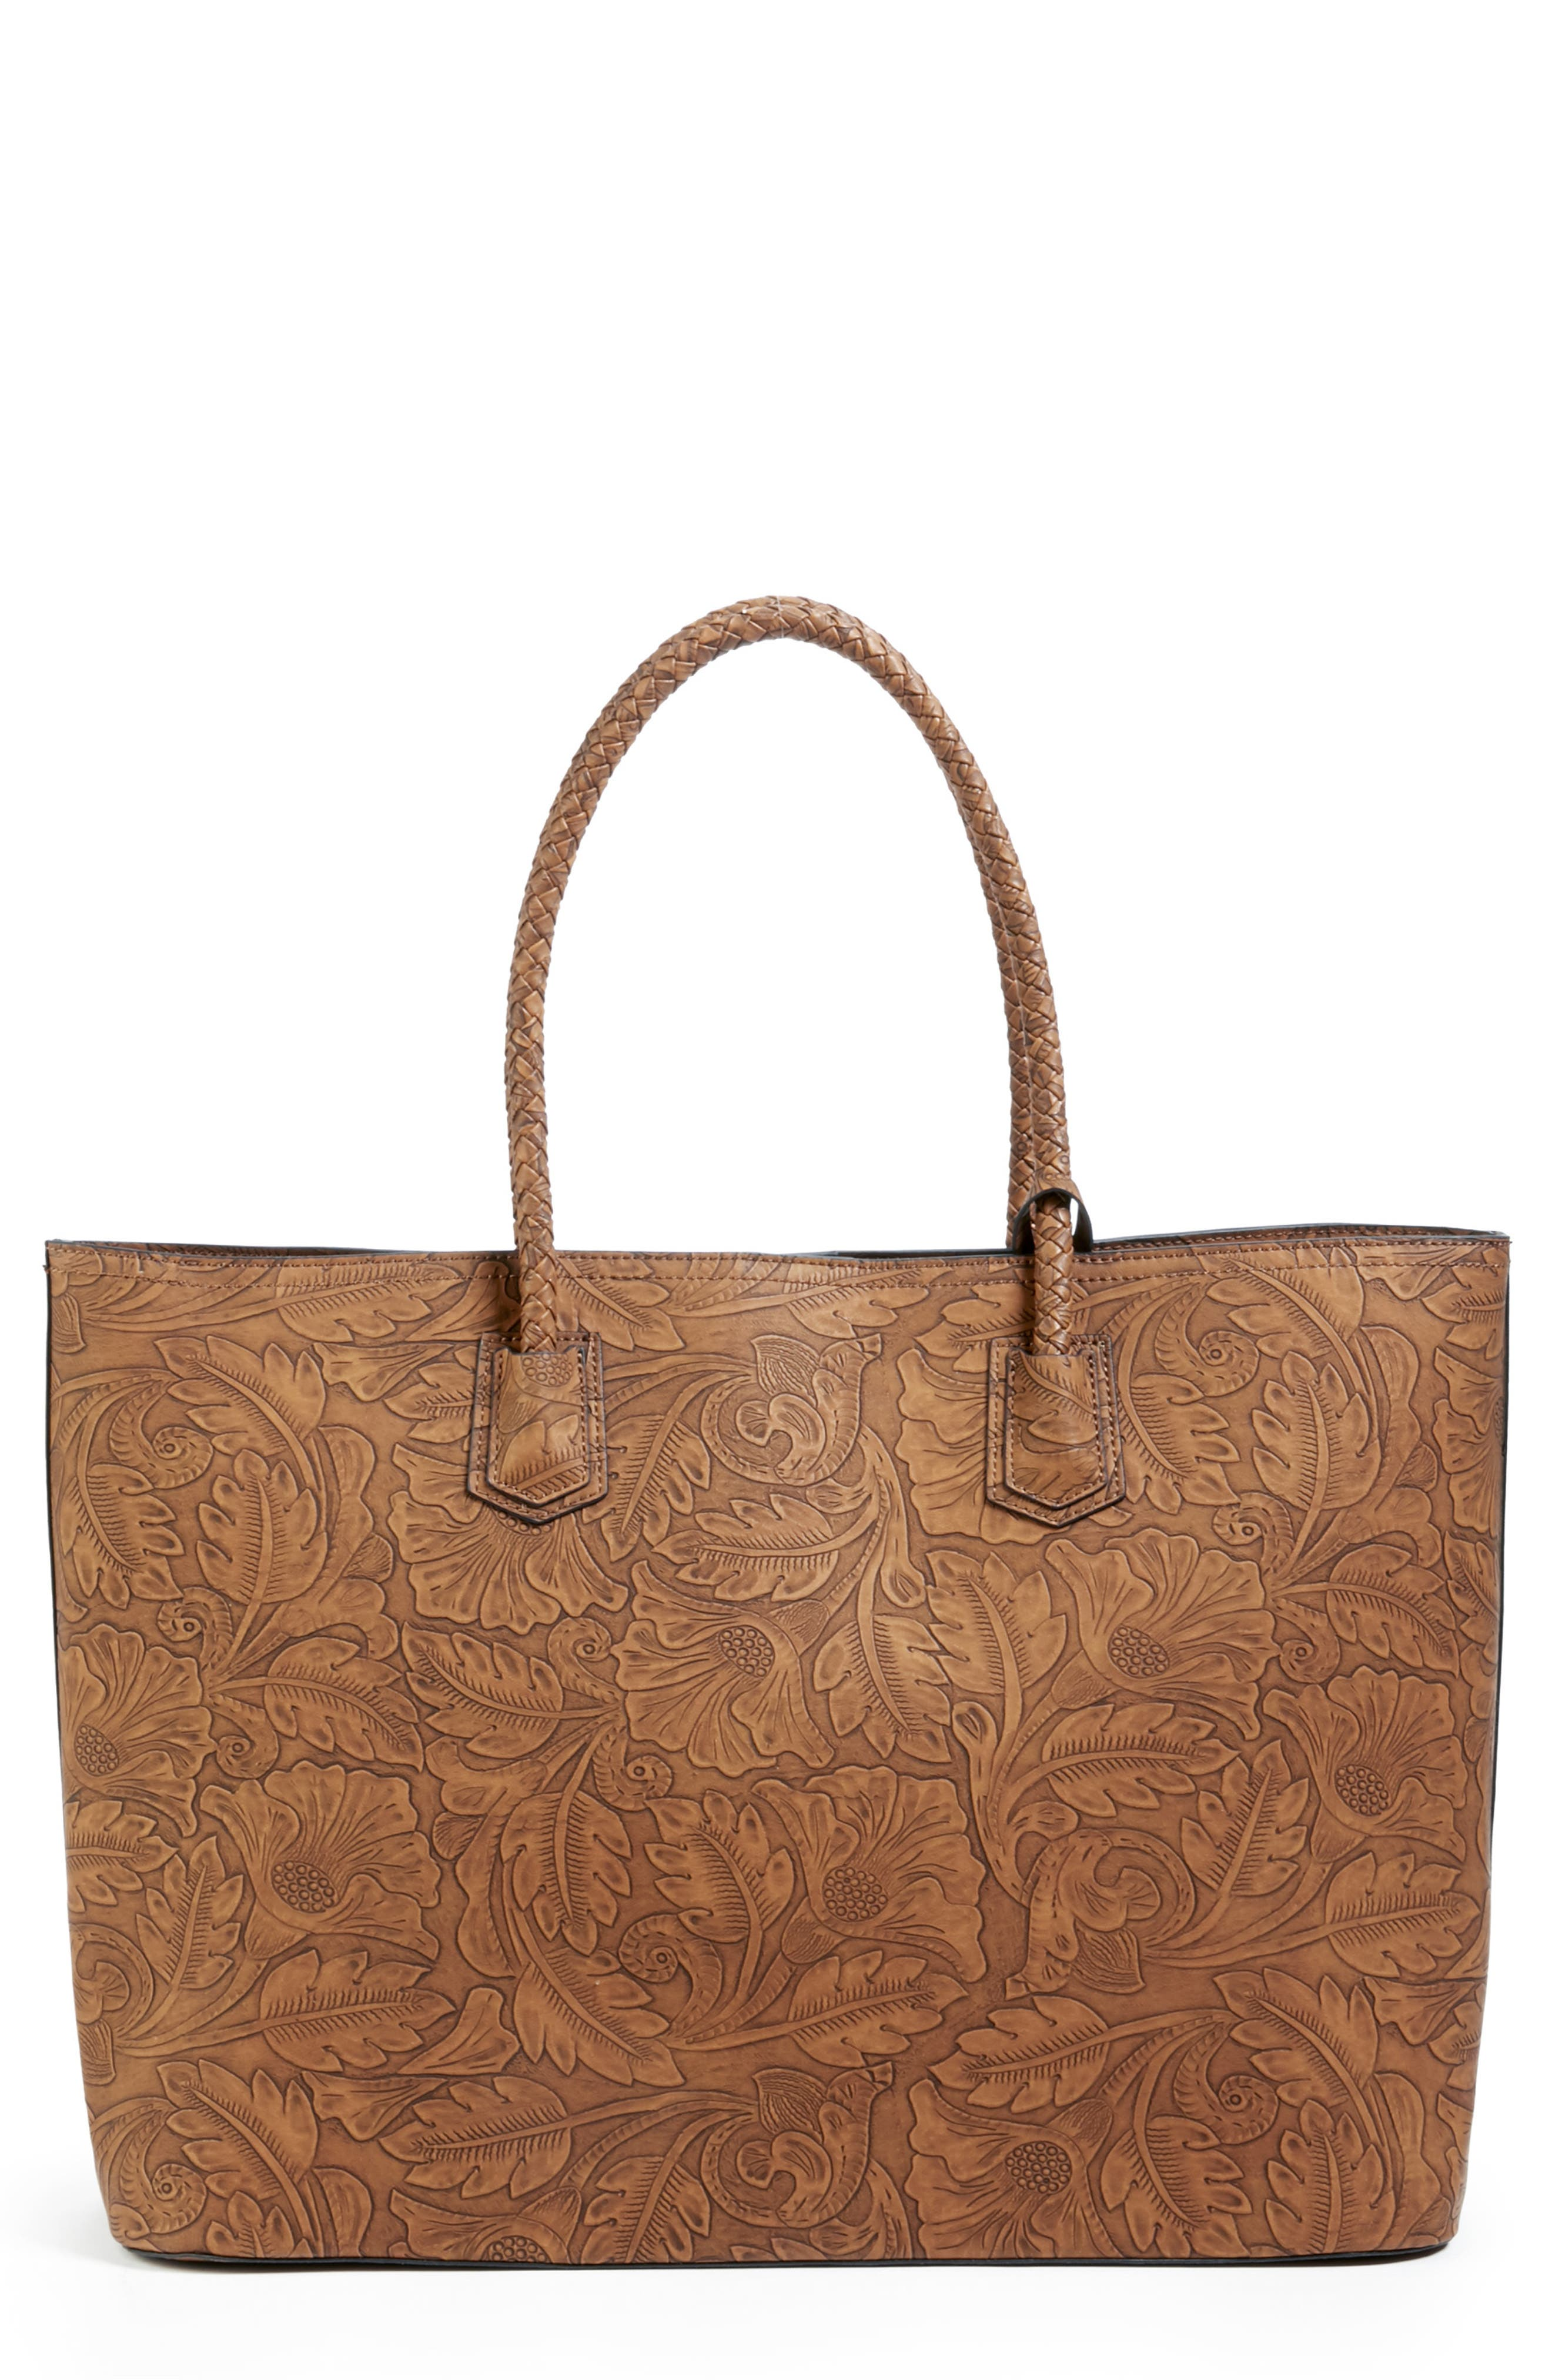 Hawna Faux Leather Tote,                             Main thumbnail 1, color,                             200